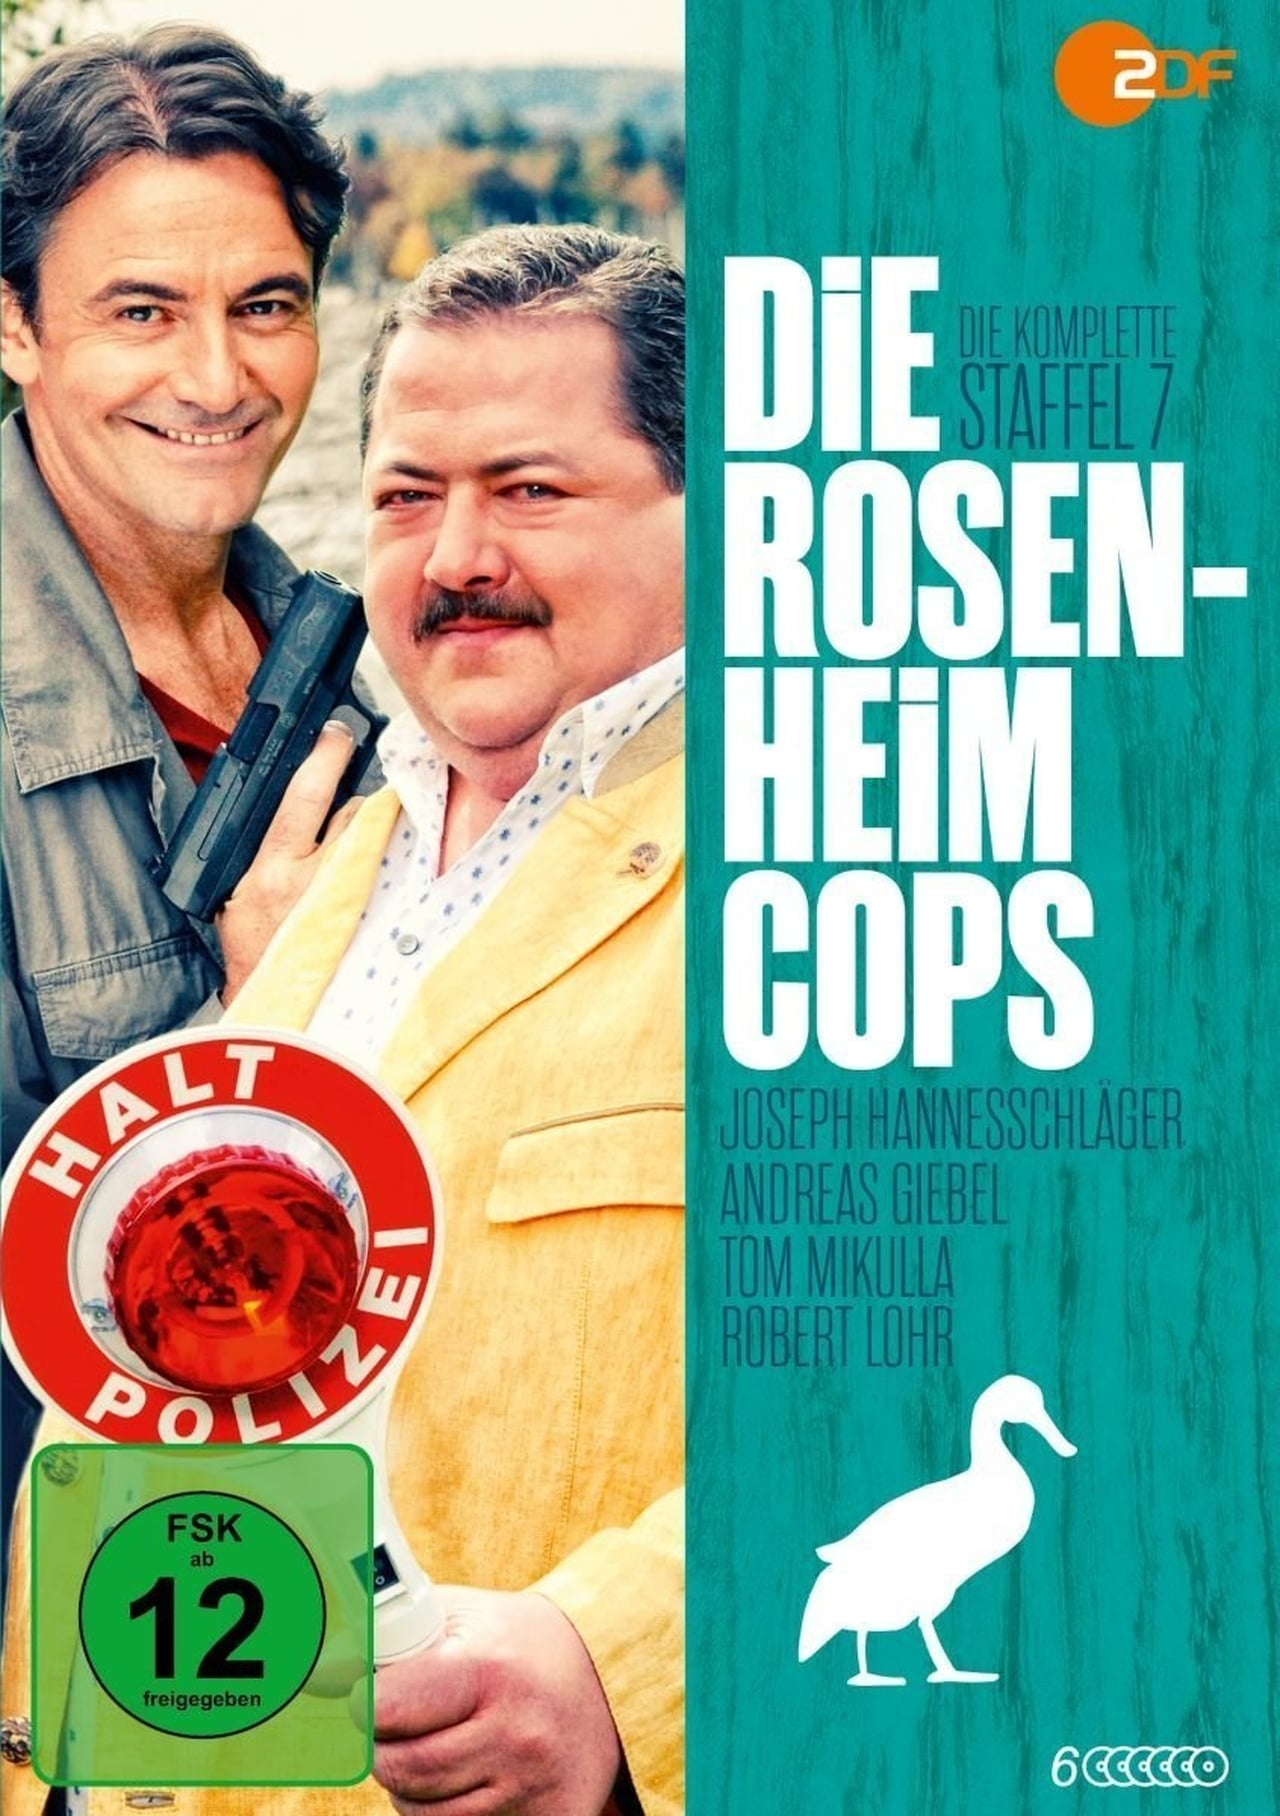 Putlocker The Rosenheim Cops Season 7 (2007)